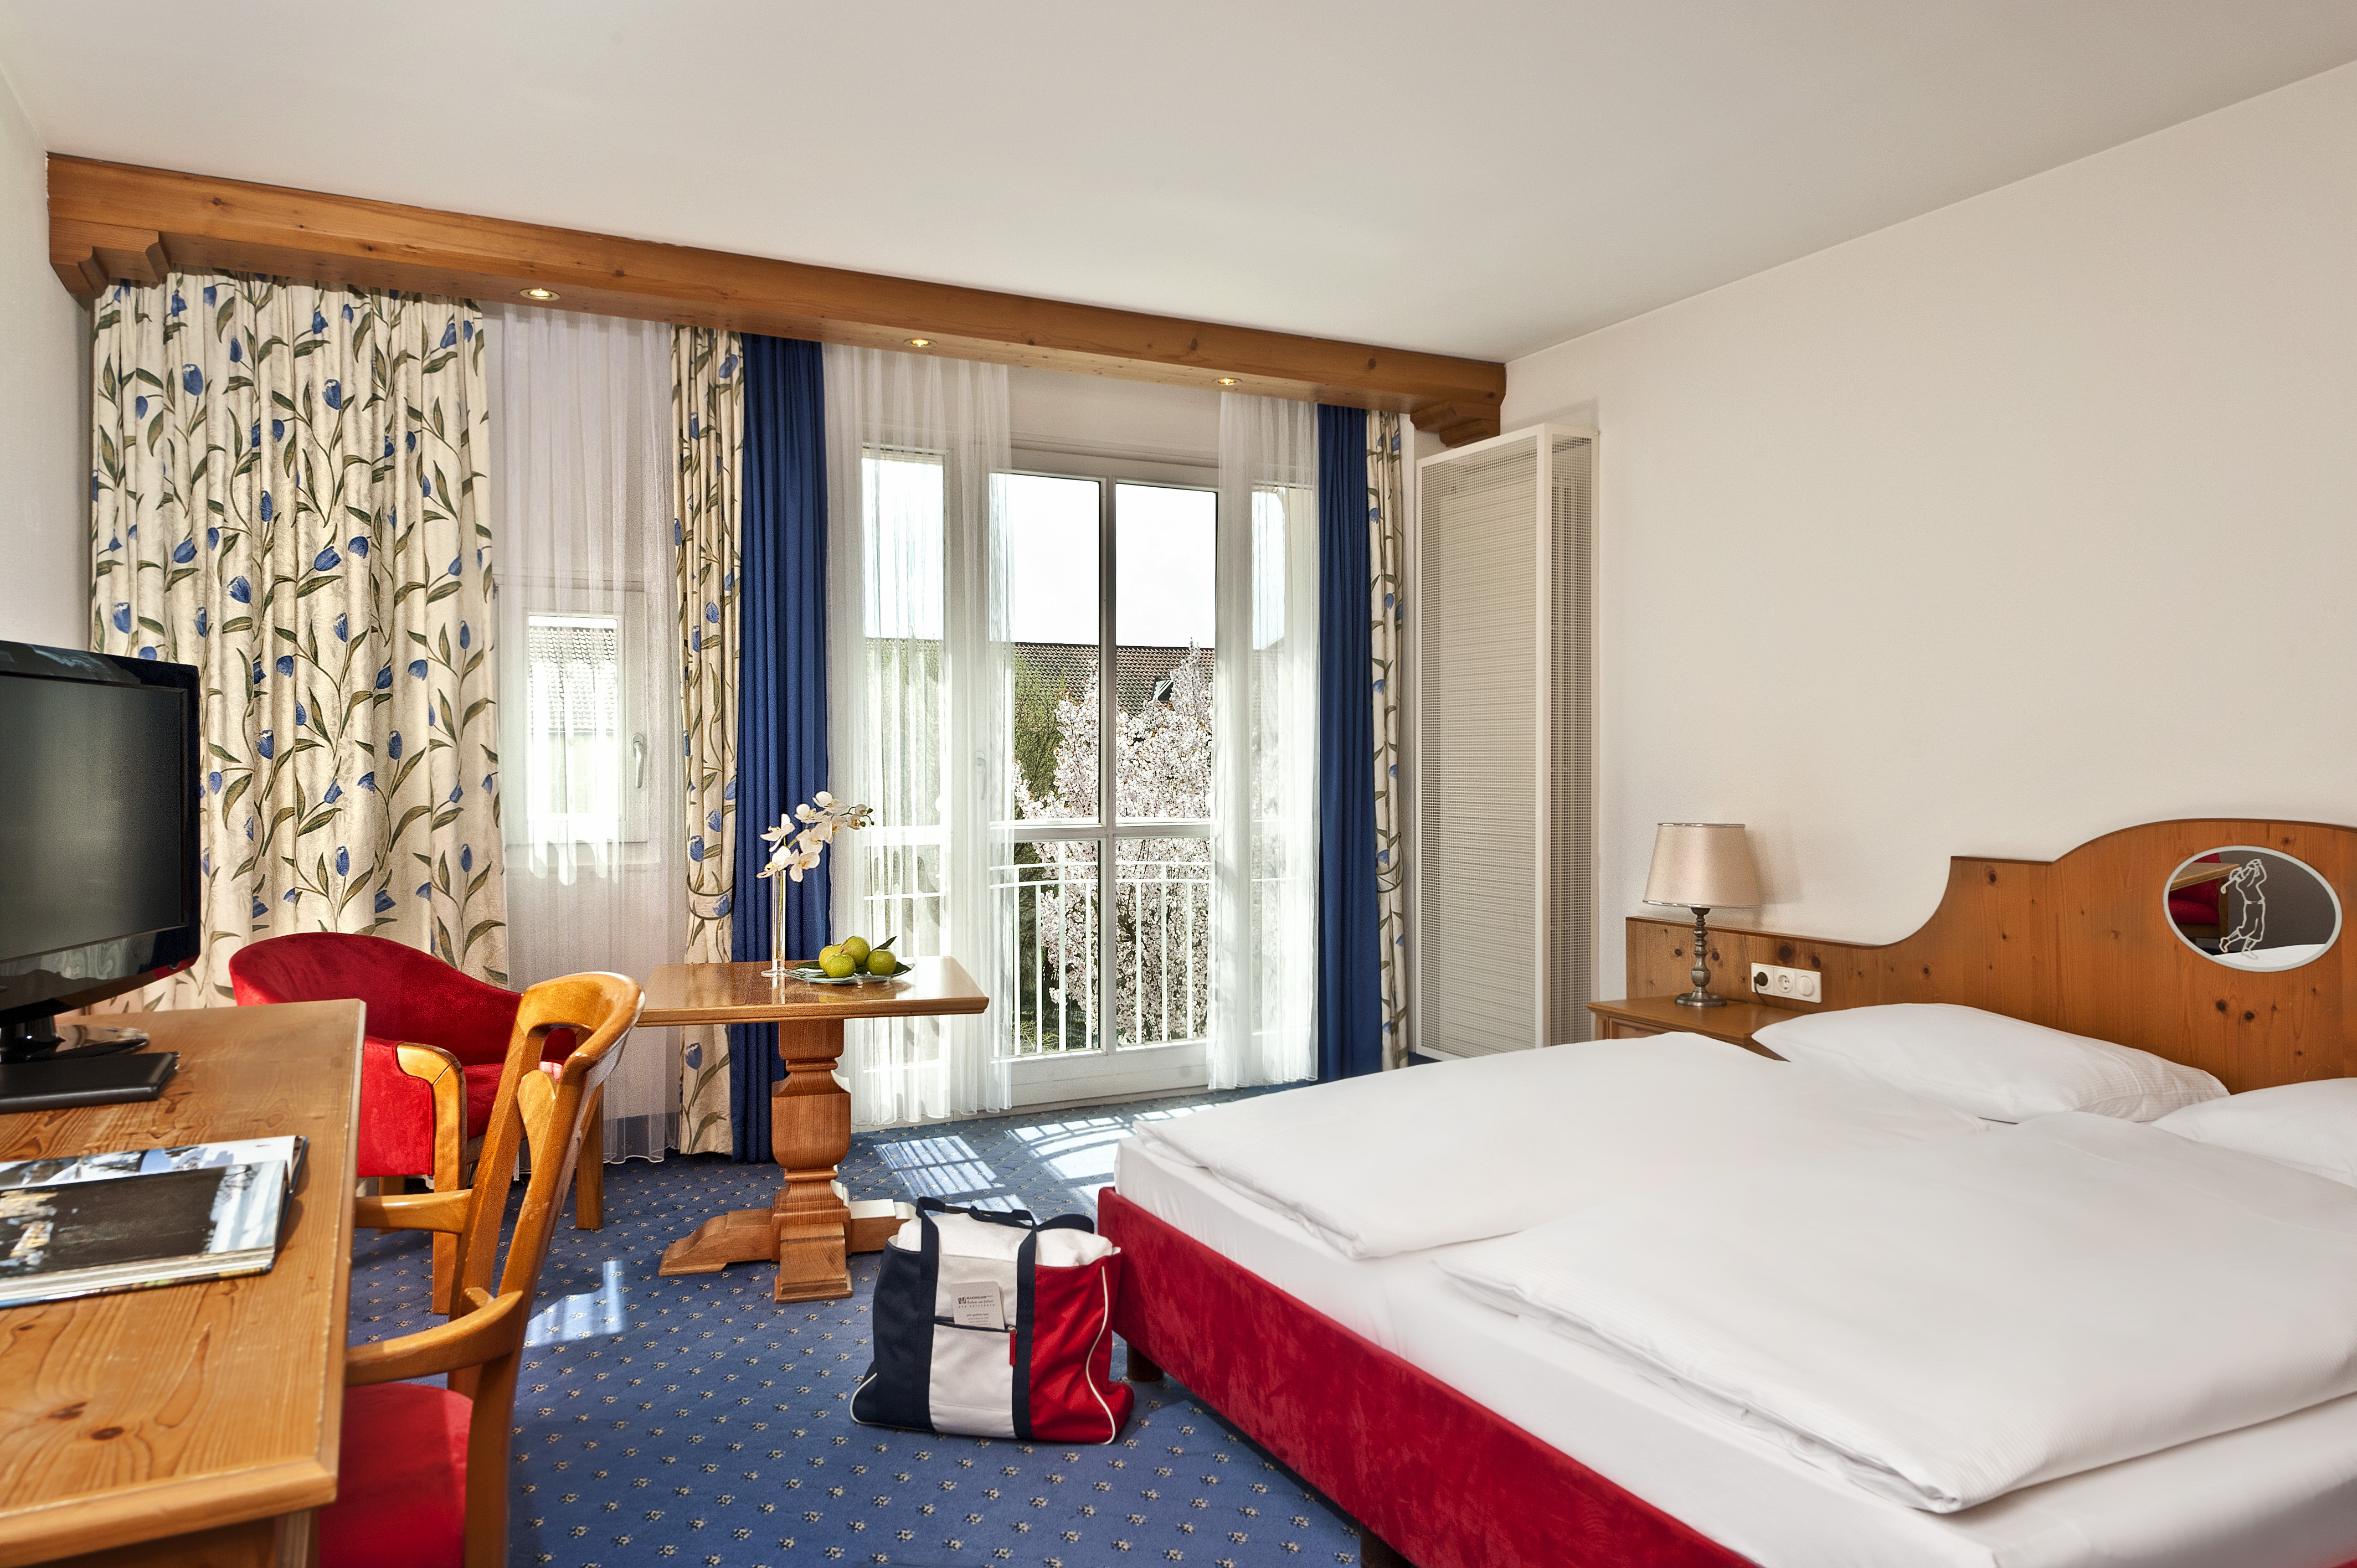 Hotels of 144 - Maximilian in Bad Griesbach